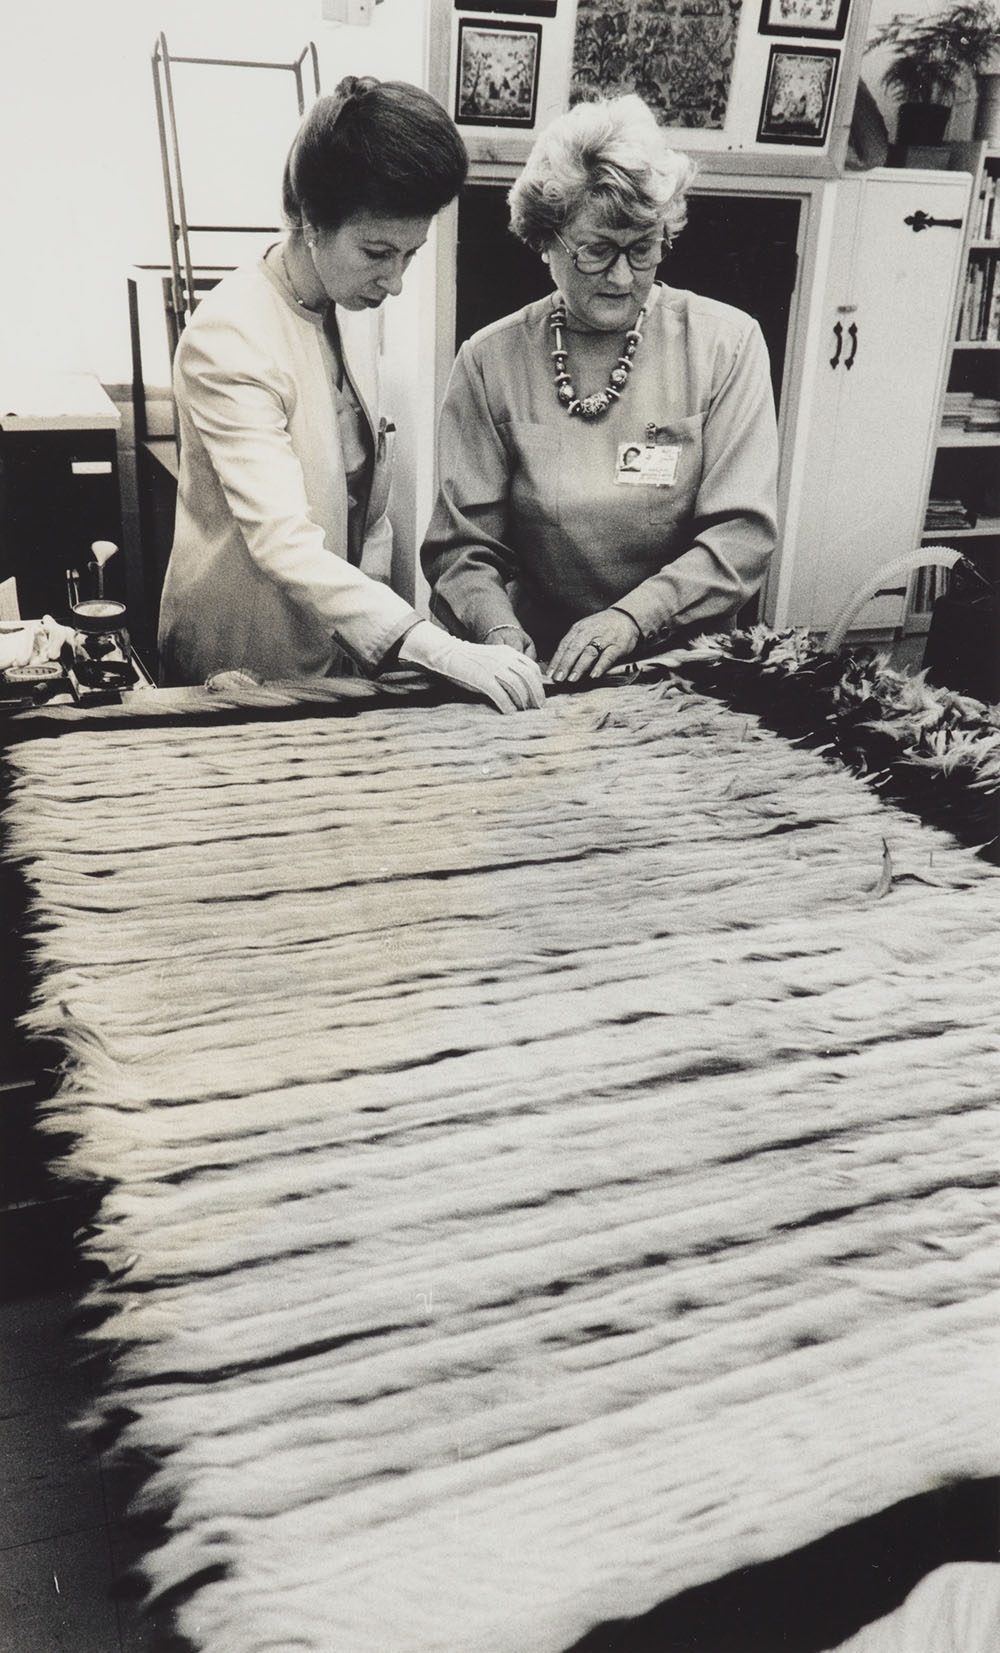 Two women examine a Māori cloak on a table